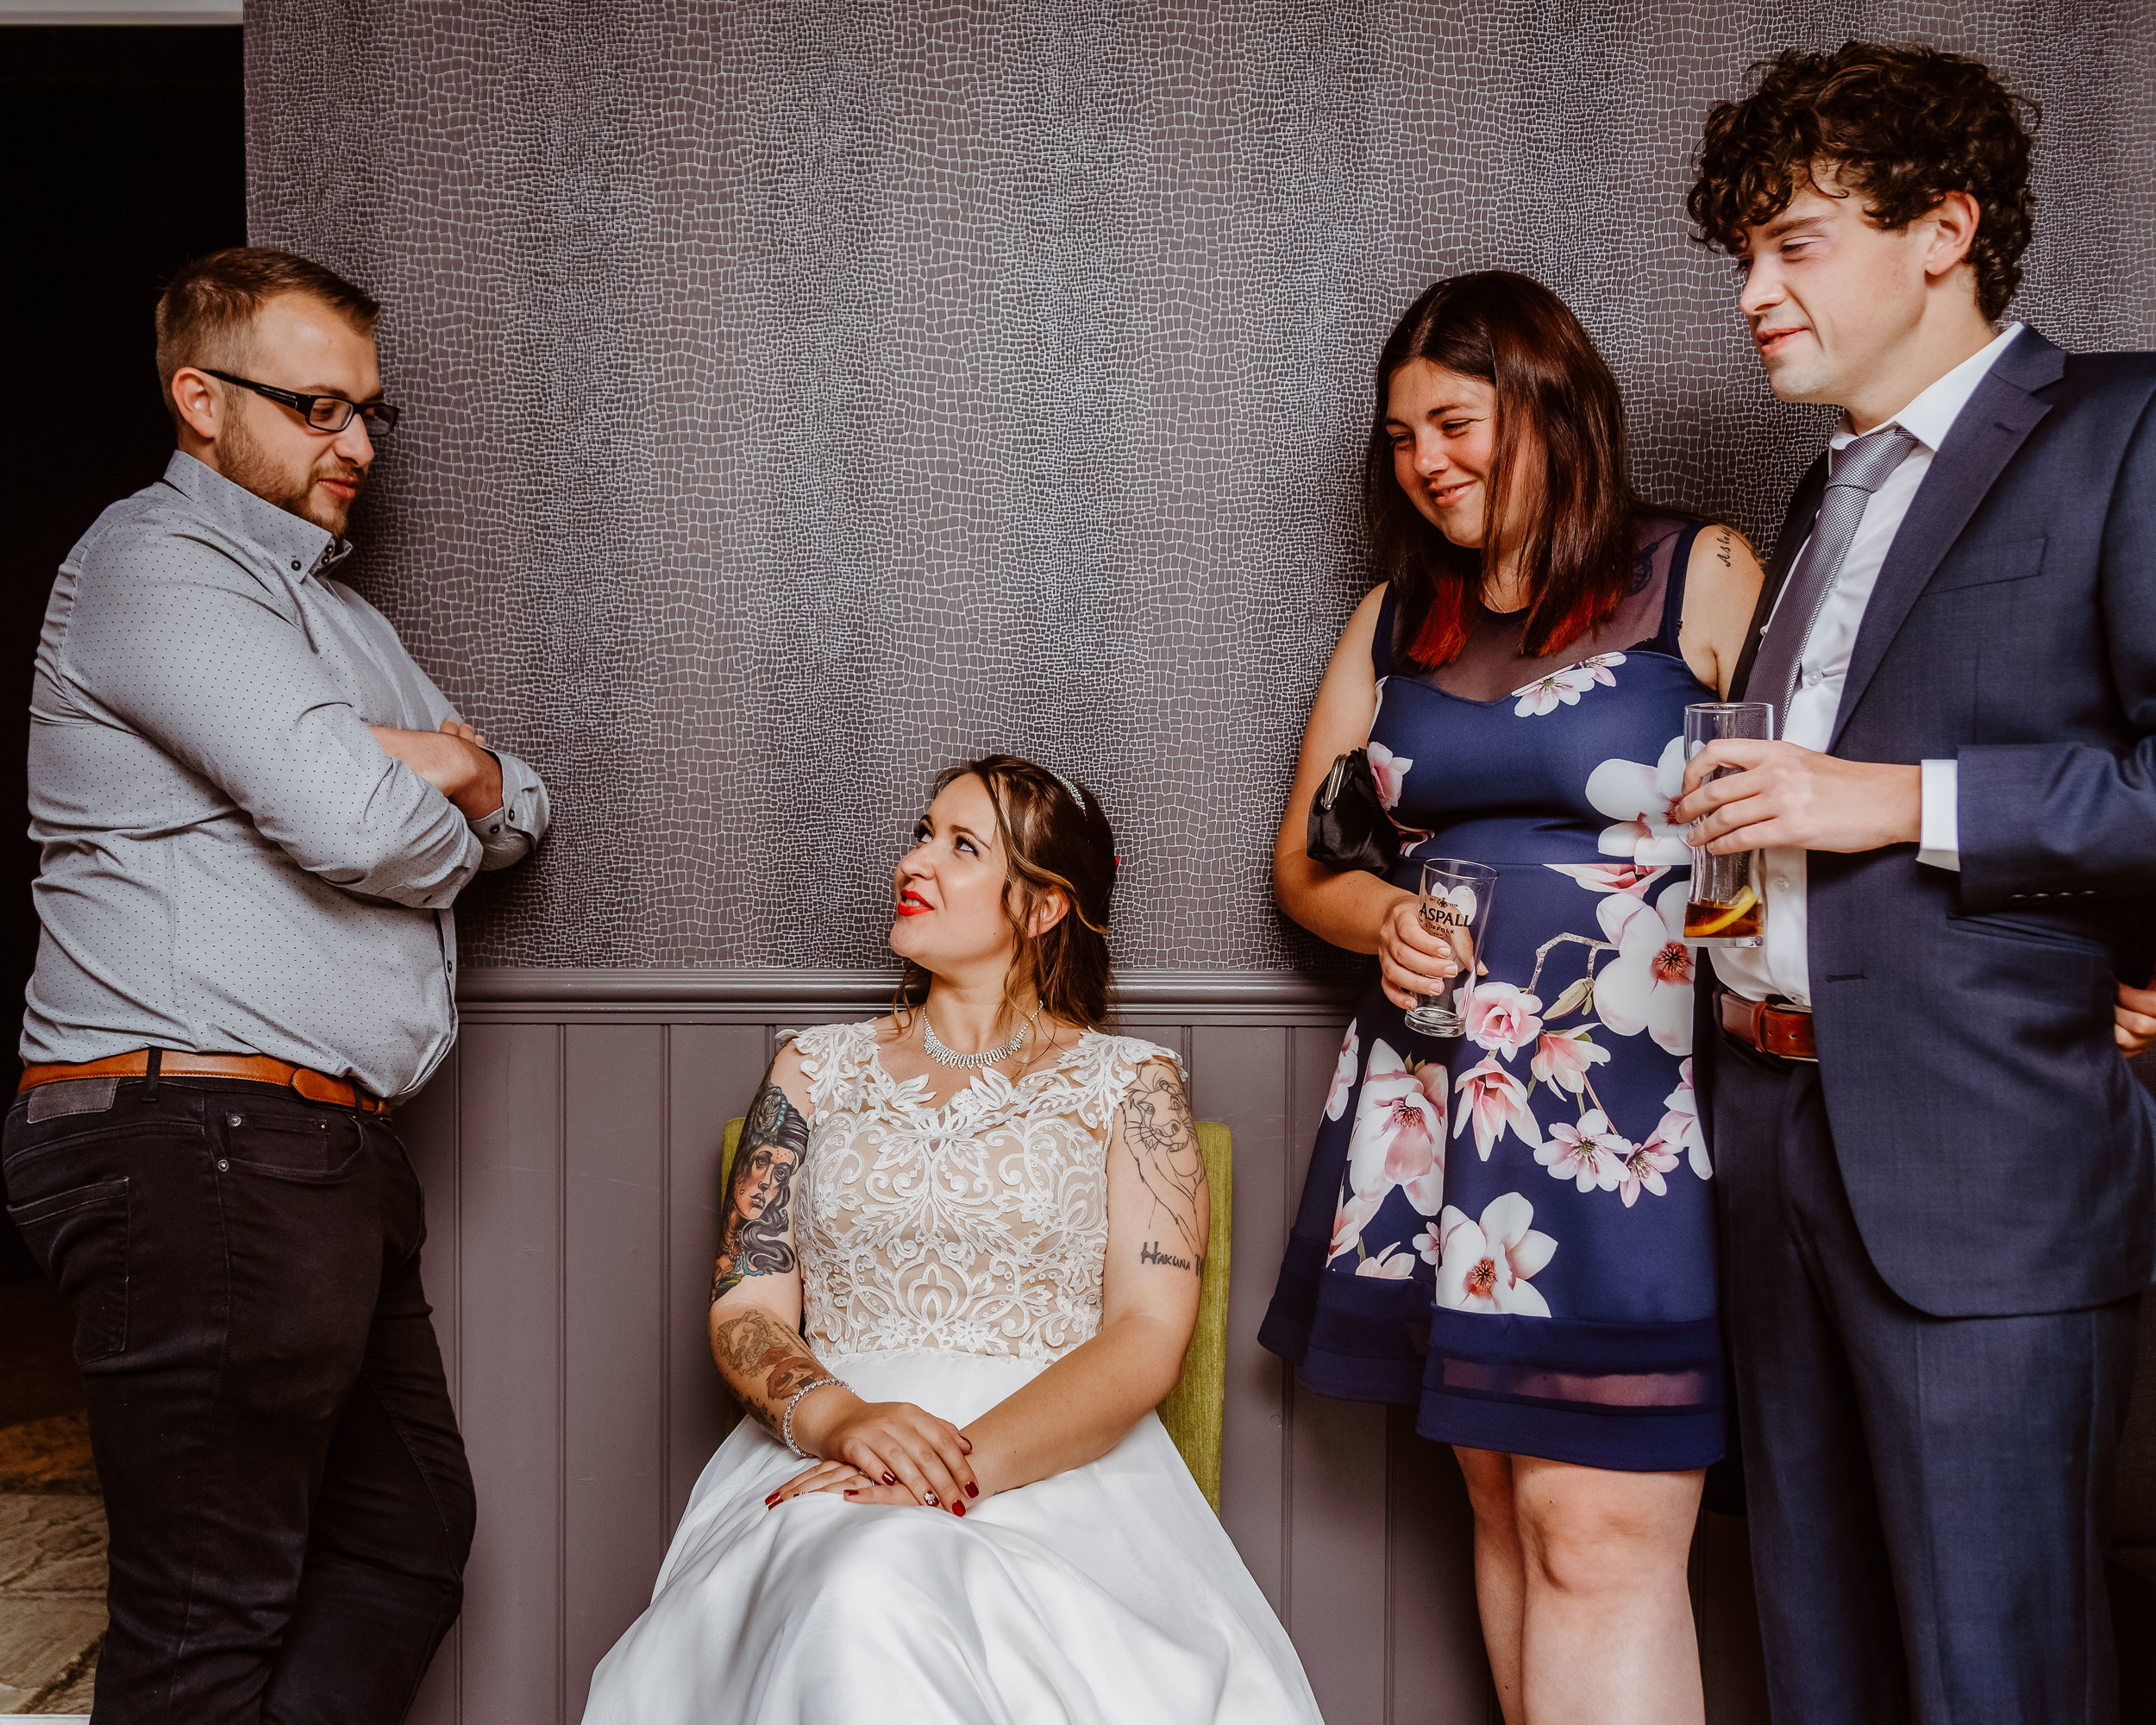 Suffolk-Wedding-Photography-Ipswich-Essex-Norfolk-photographer-18.jpg